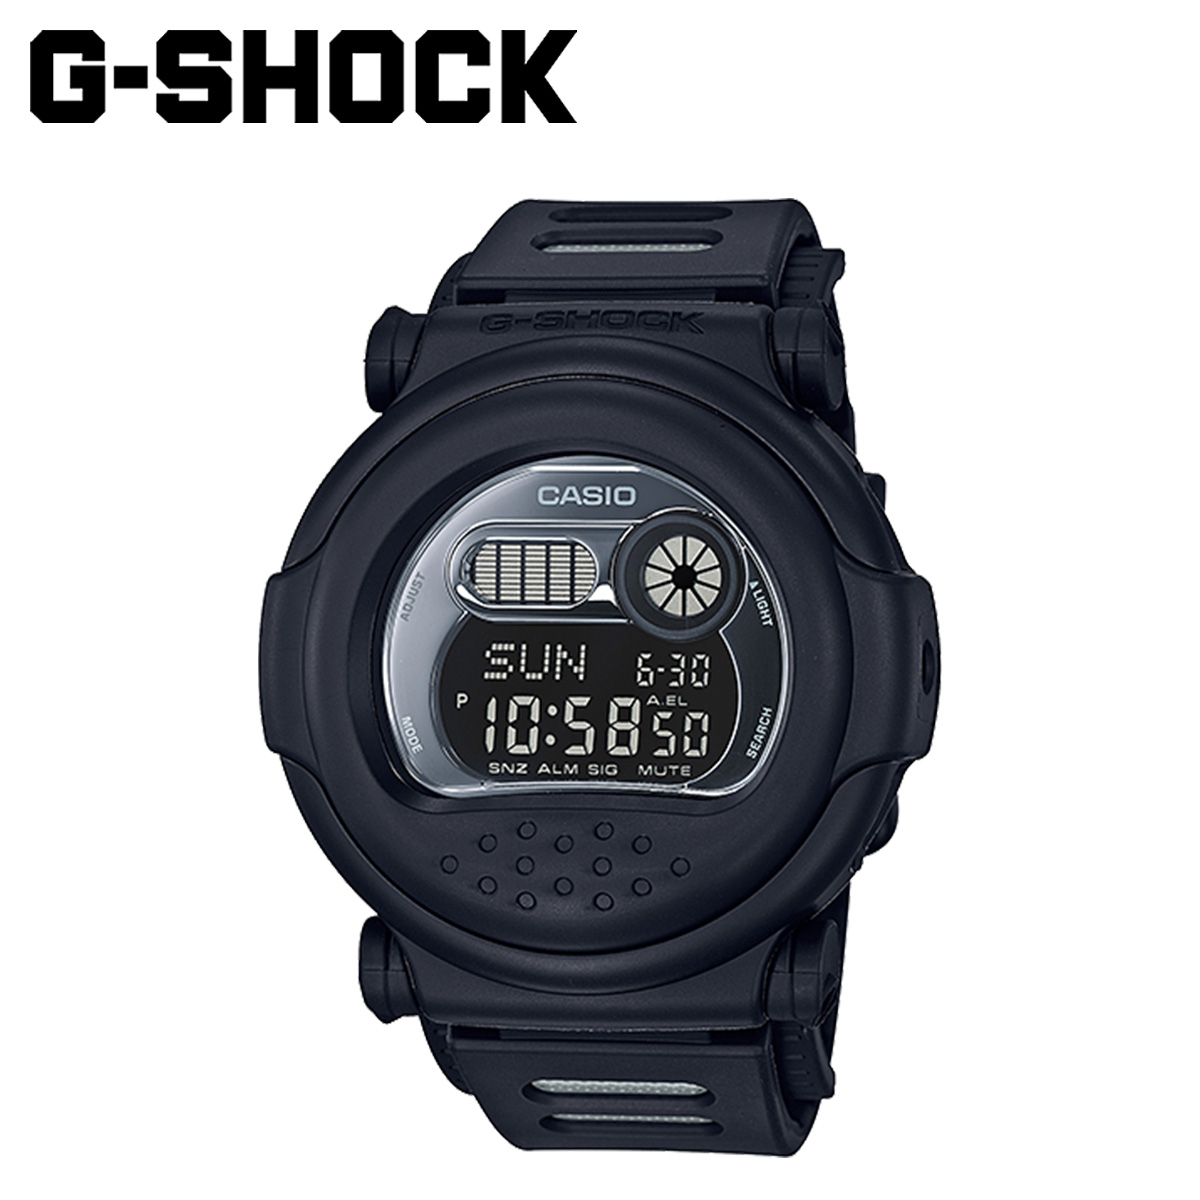 23185667cbfb0 Sugar Online Shop  CASIO Casio G-SHOCK watch G-001BB-1JF black men ...